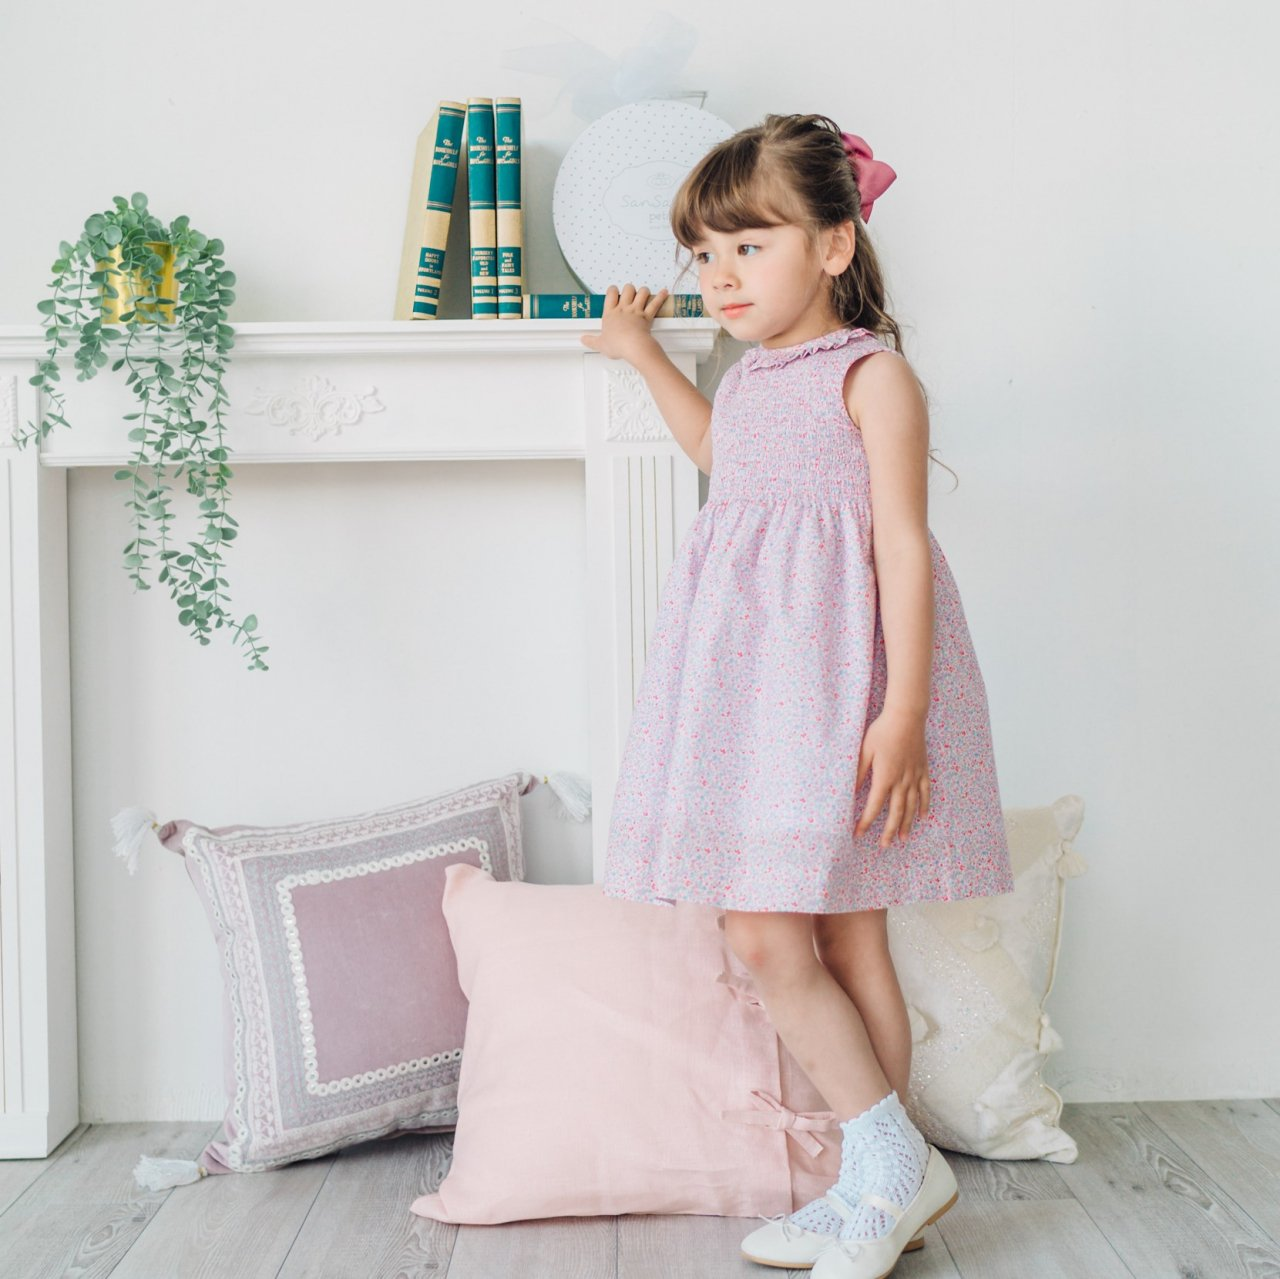 <img class='new_mark_img1' src='https://img.shop-pro.jp/img/new/icons14.gif' style='border:none;display:inline;margin:0px;padding:0px;width:auto;' />Pi & Pa - Floral shirring dress